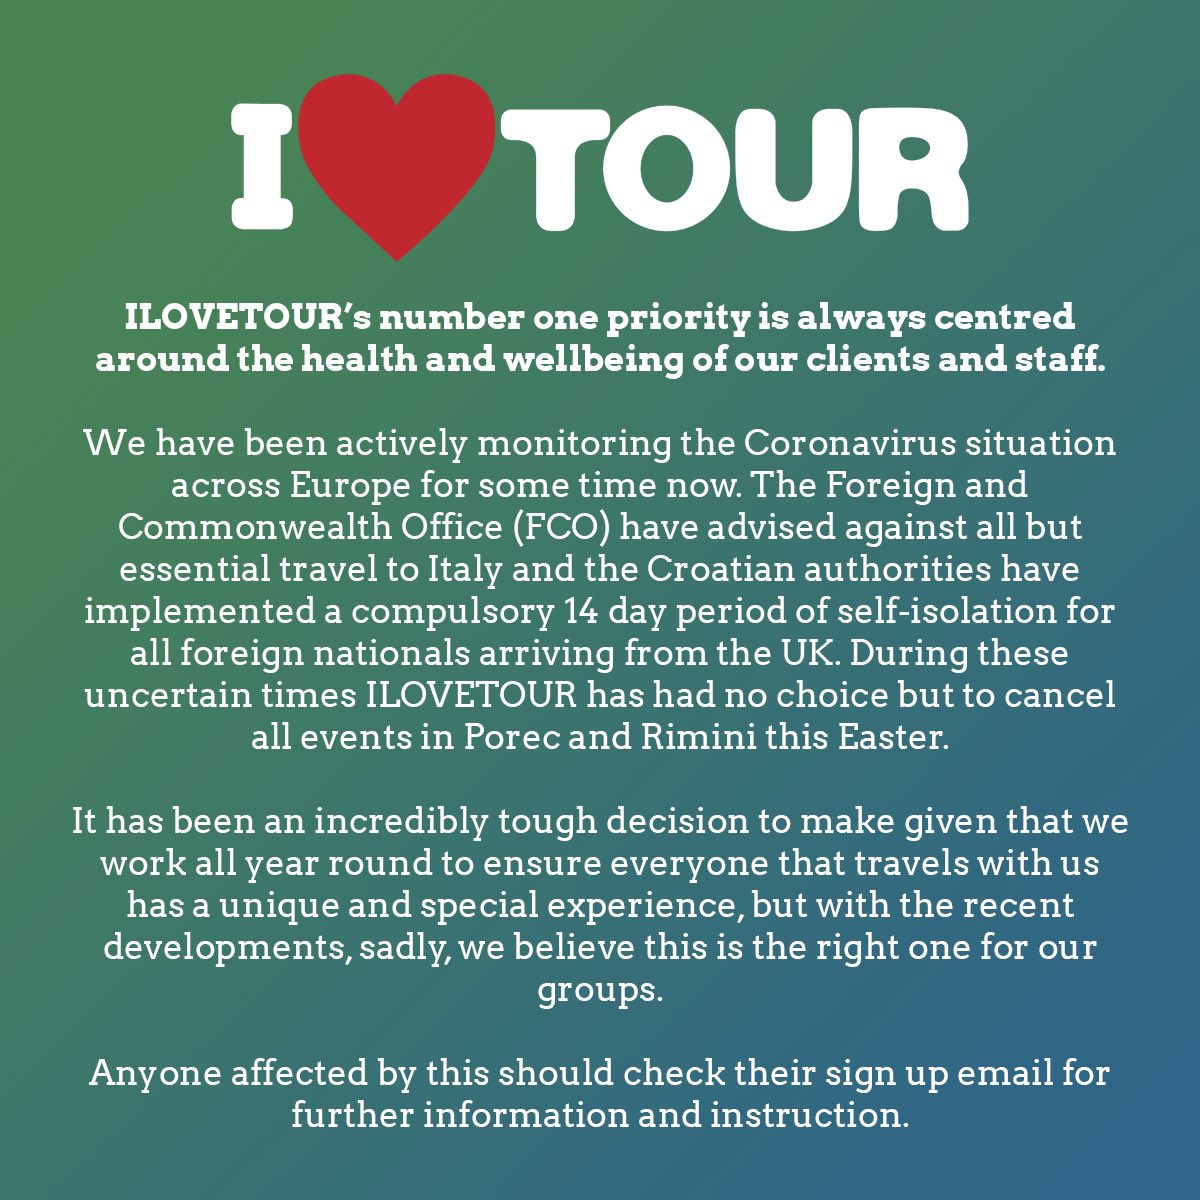 ILOVETOUR update!    https://t.co/KFSX19ESmM https://t.co/PYyyRnKM59